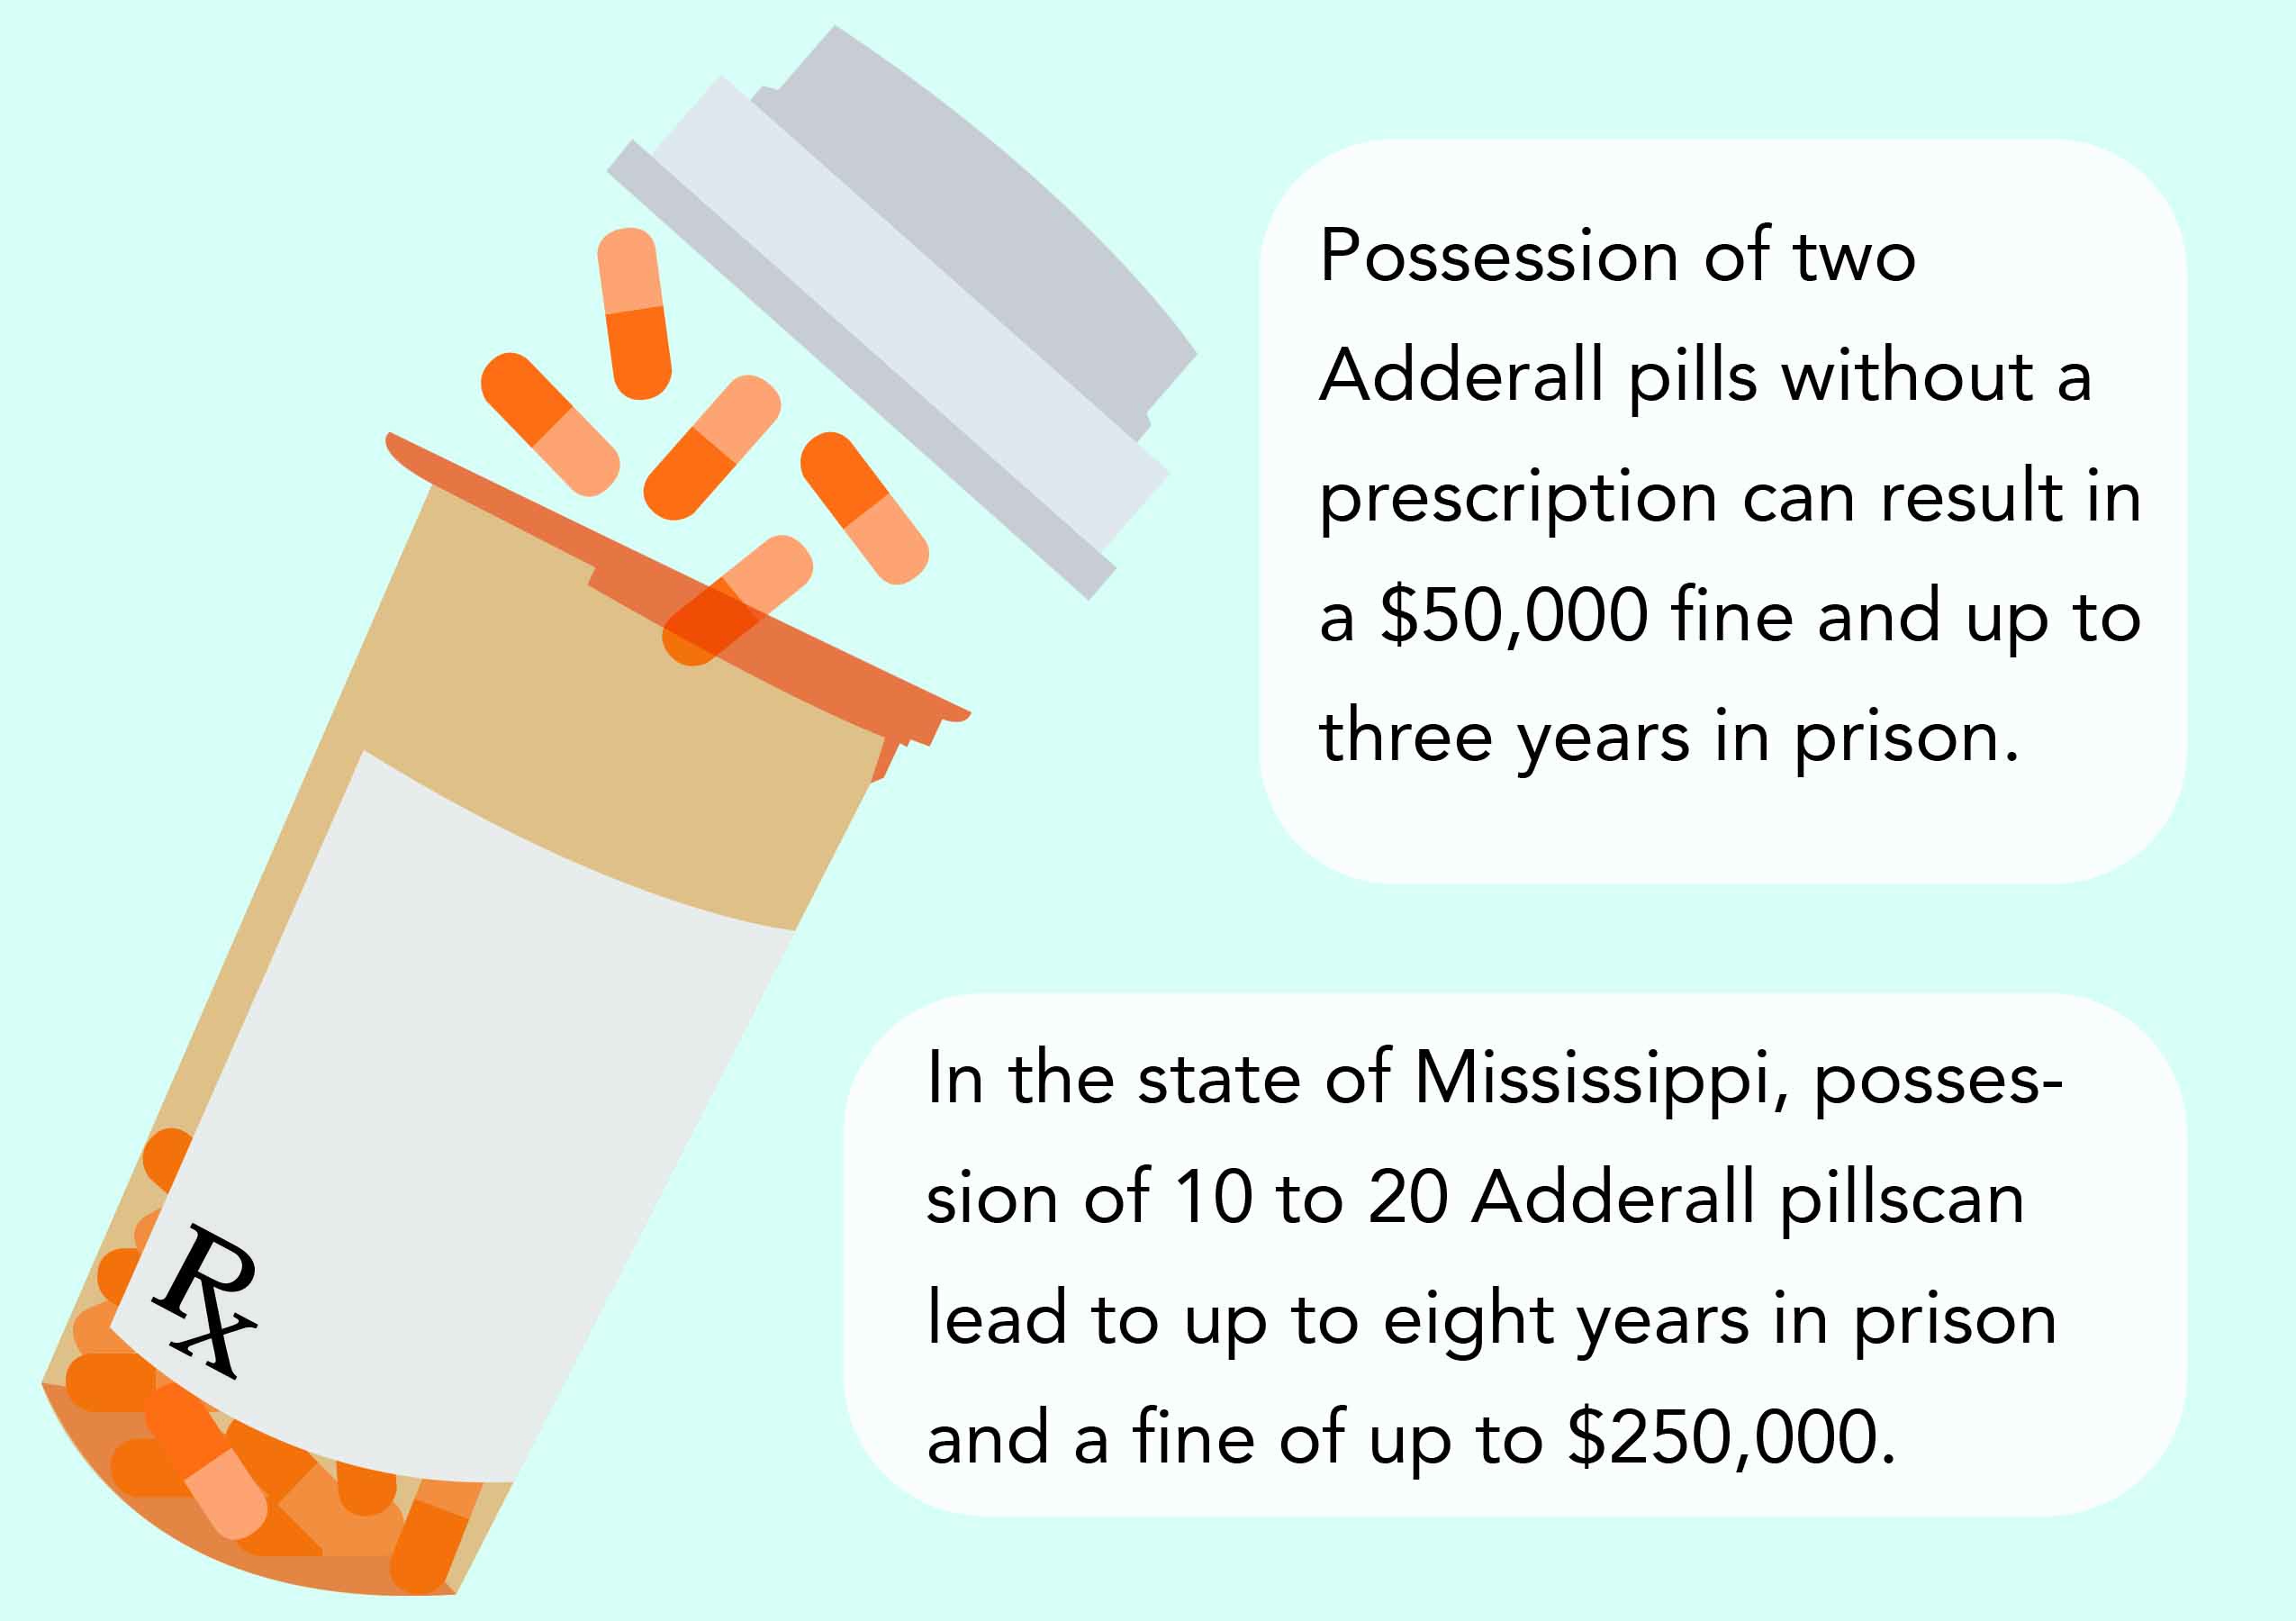 Adderall possession could lead to fines, jail time - The